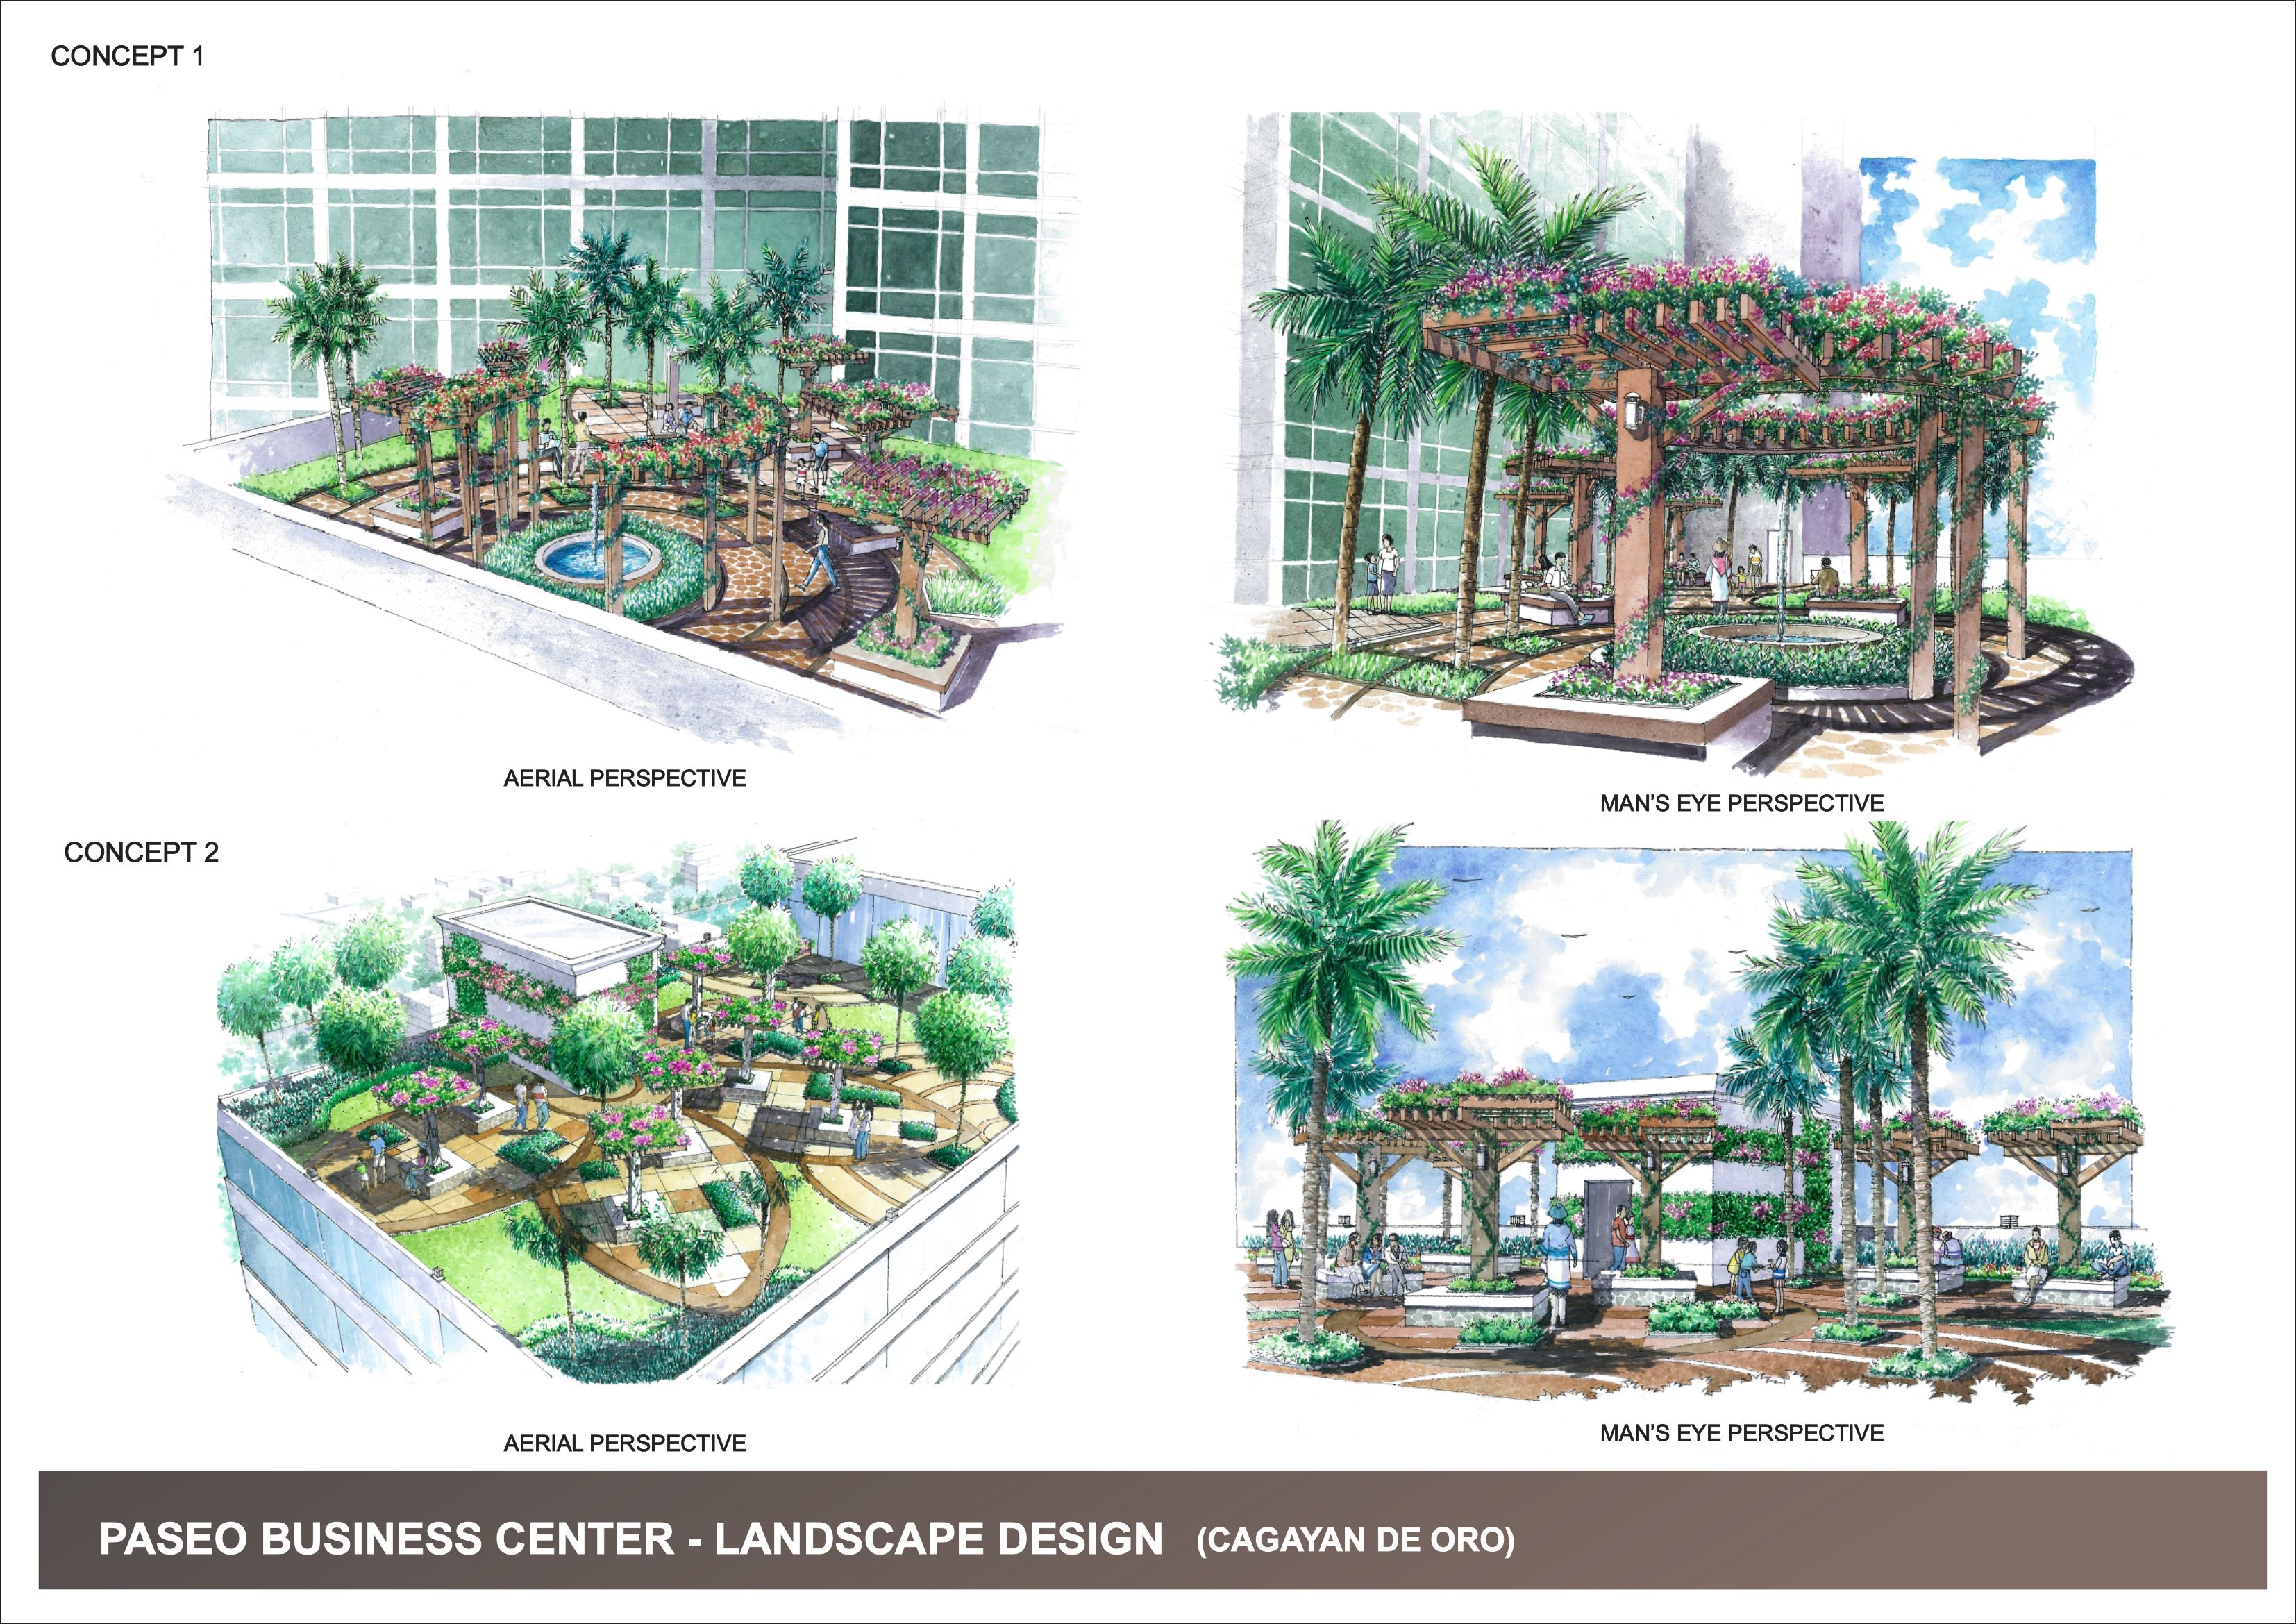 Landscape Design Roof Top Design Green Roof Design Freehand Drawings Hand Drawn Watercolour Rendering Tropical Landscape Design Philippines Project Sket